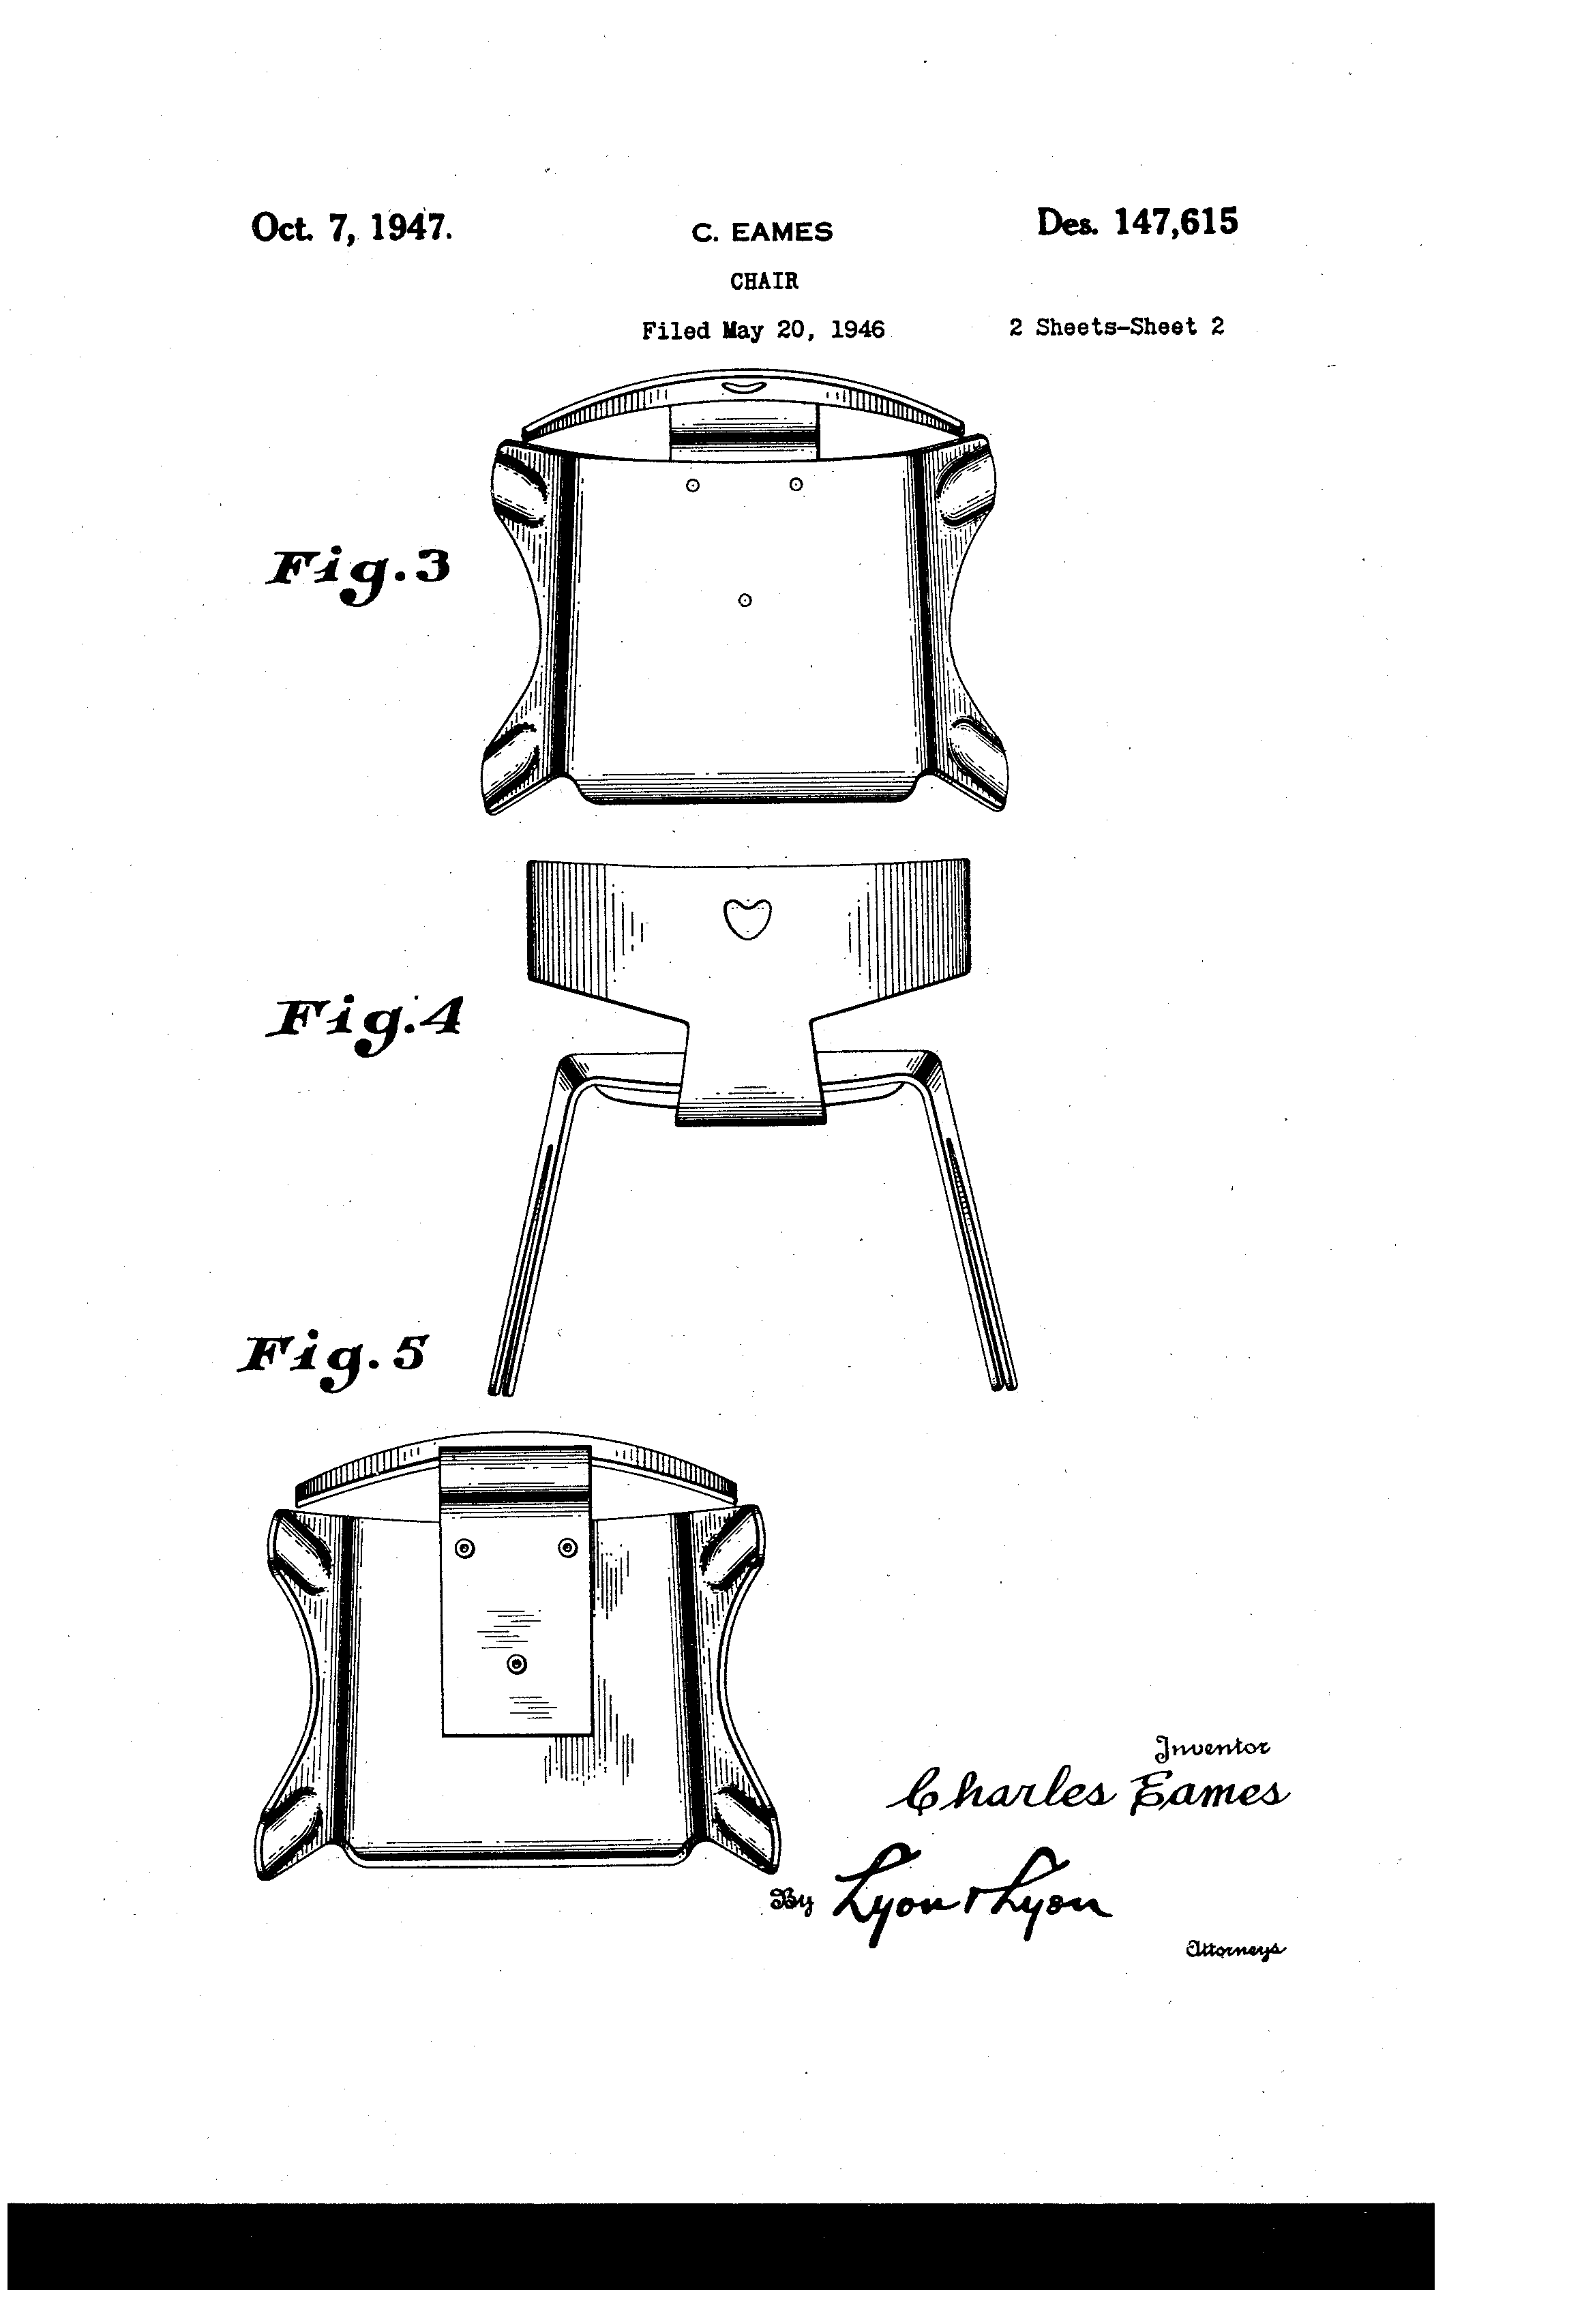 Eames Chair Patent Patent Usd147615 Eames Chair Google Patents Diy